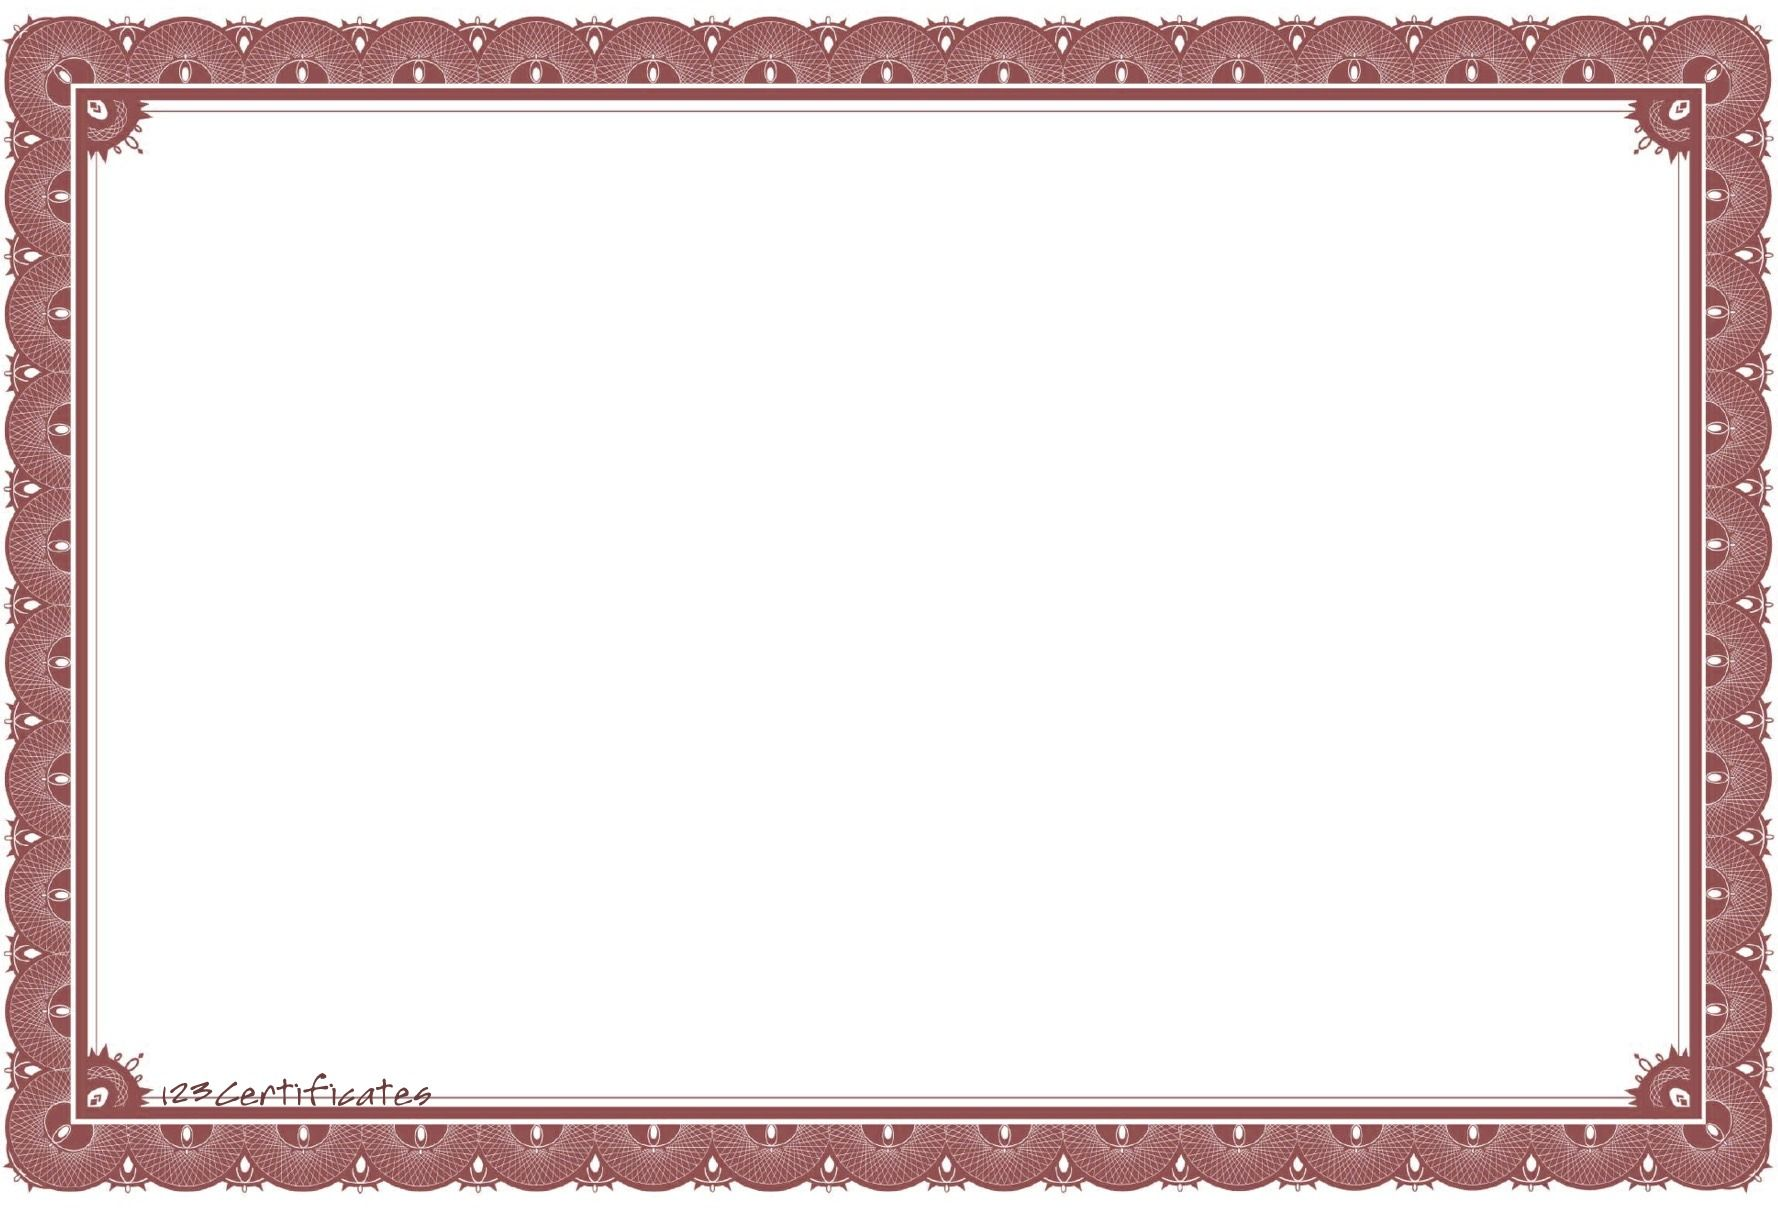 Free certificate borders to download certificate templates for free certificate borders to download certificate templates for yadclub Image collections